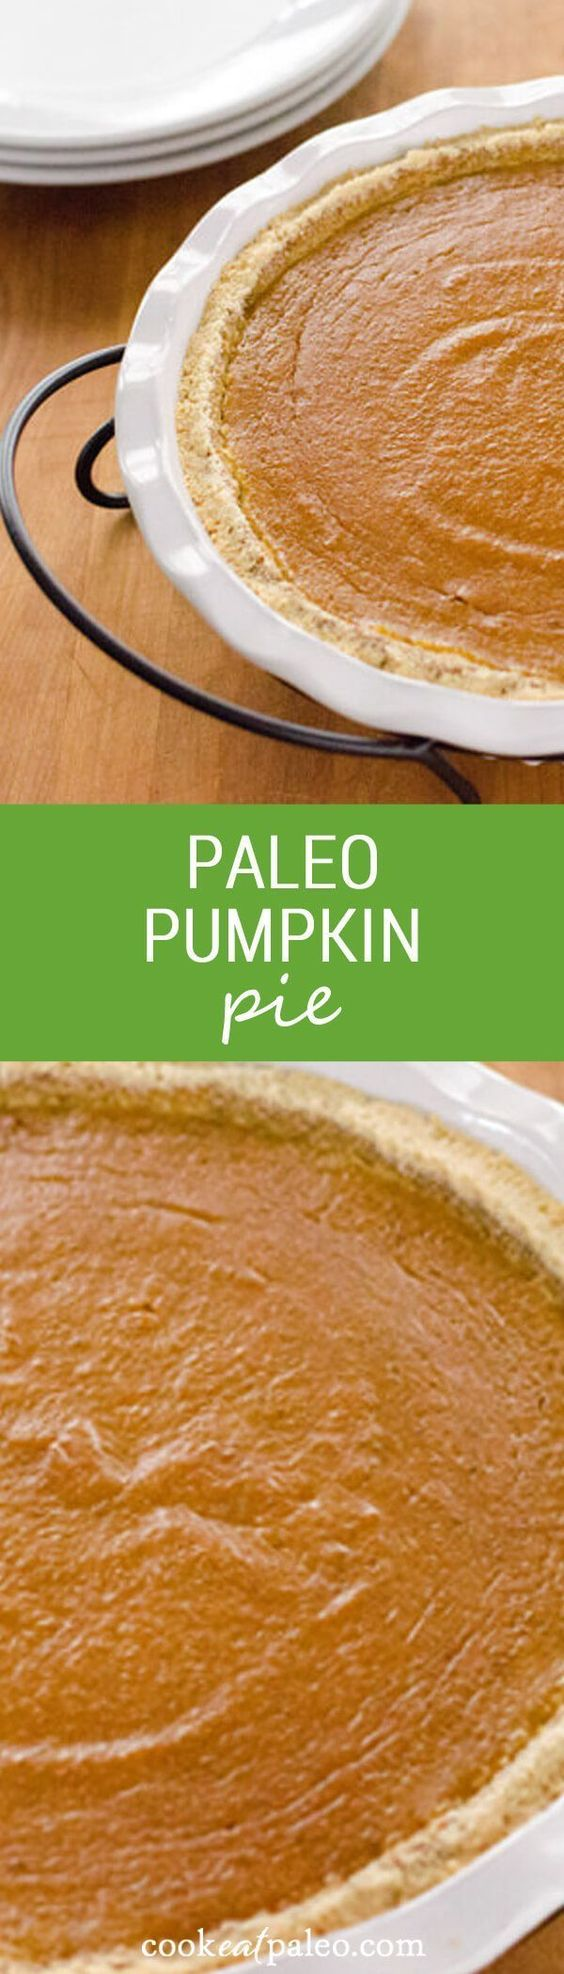 This paleo pumpkin pie is a quick and easy gluten-free pumpkin pie recipe for…